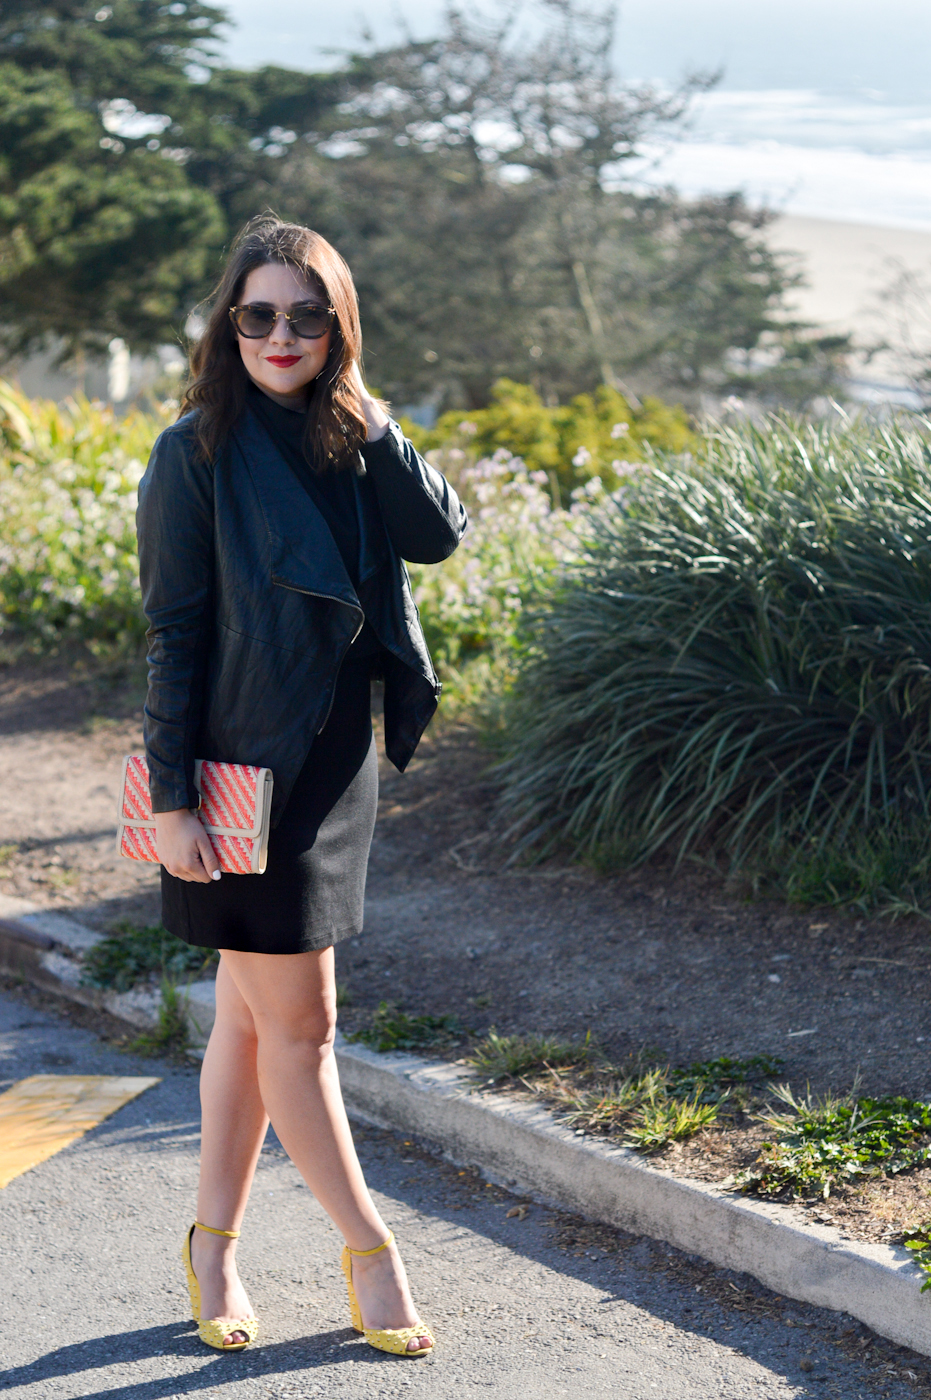 LBD & Leather Jacket via. Birdie Shoots